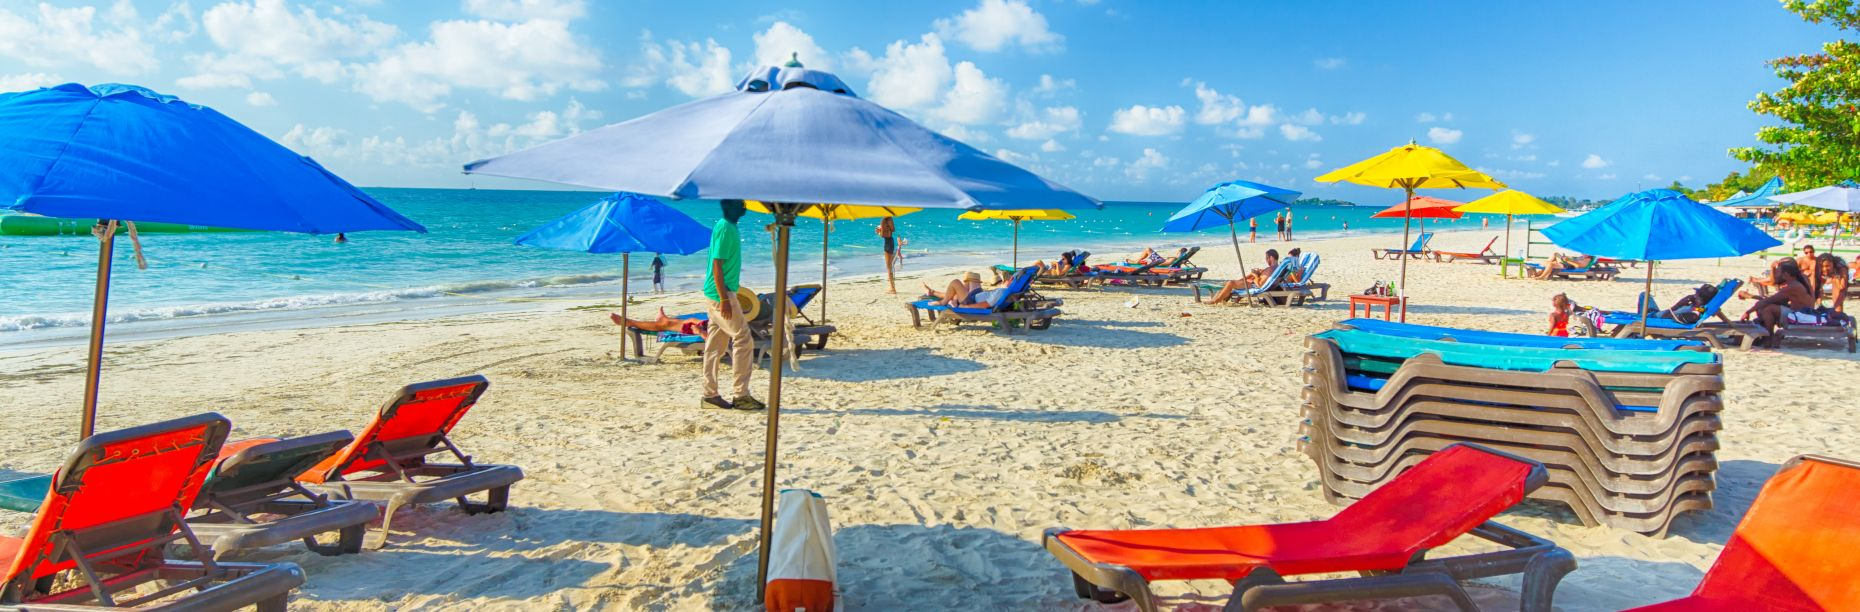 Colorful umbrellas and lounge chairs on the beach